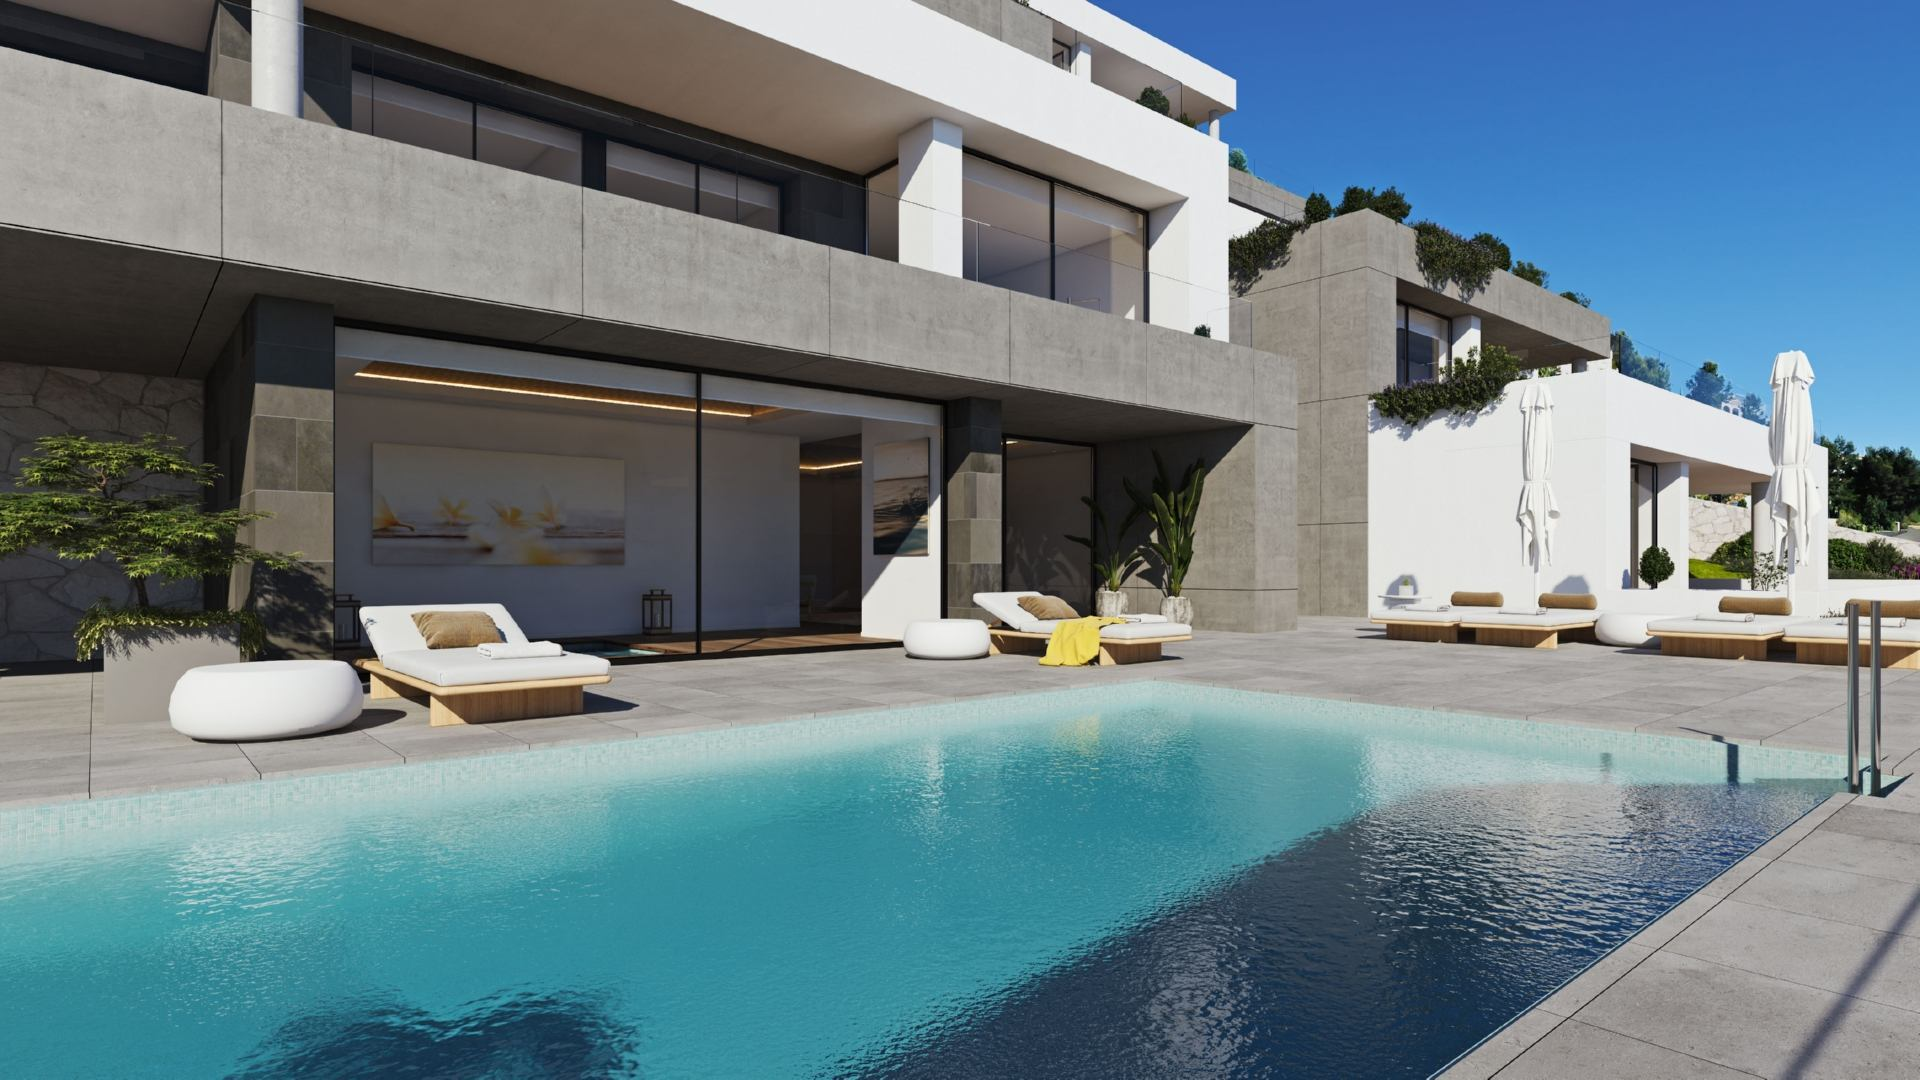 Photogallery - 1 - Exceptional homes in the Costa Blanca. Unparalleled Service. Exceptional properties in the Costa Blanca